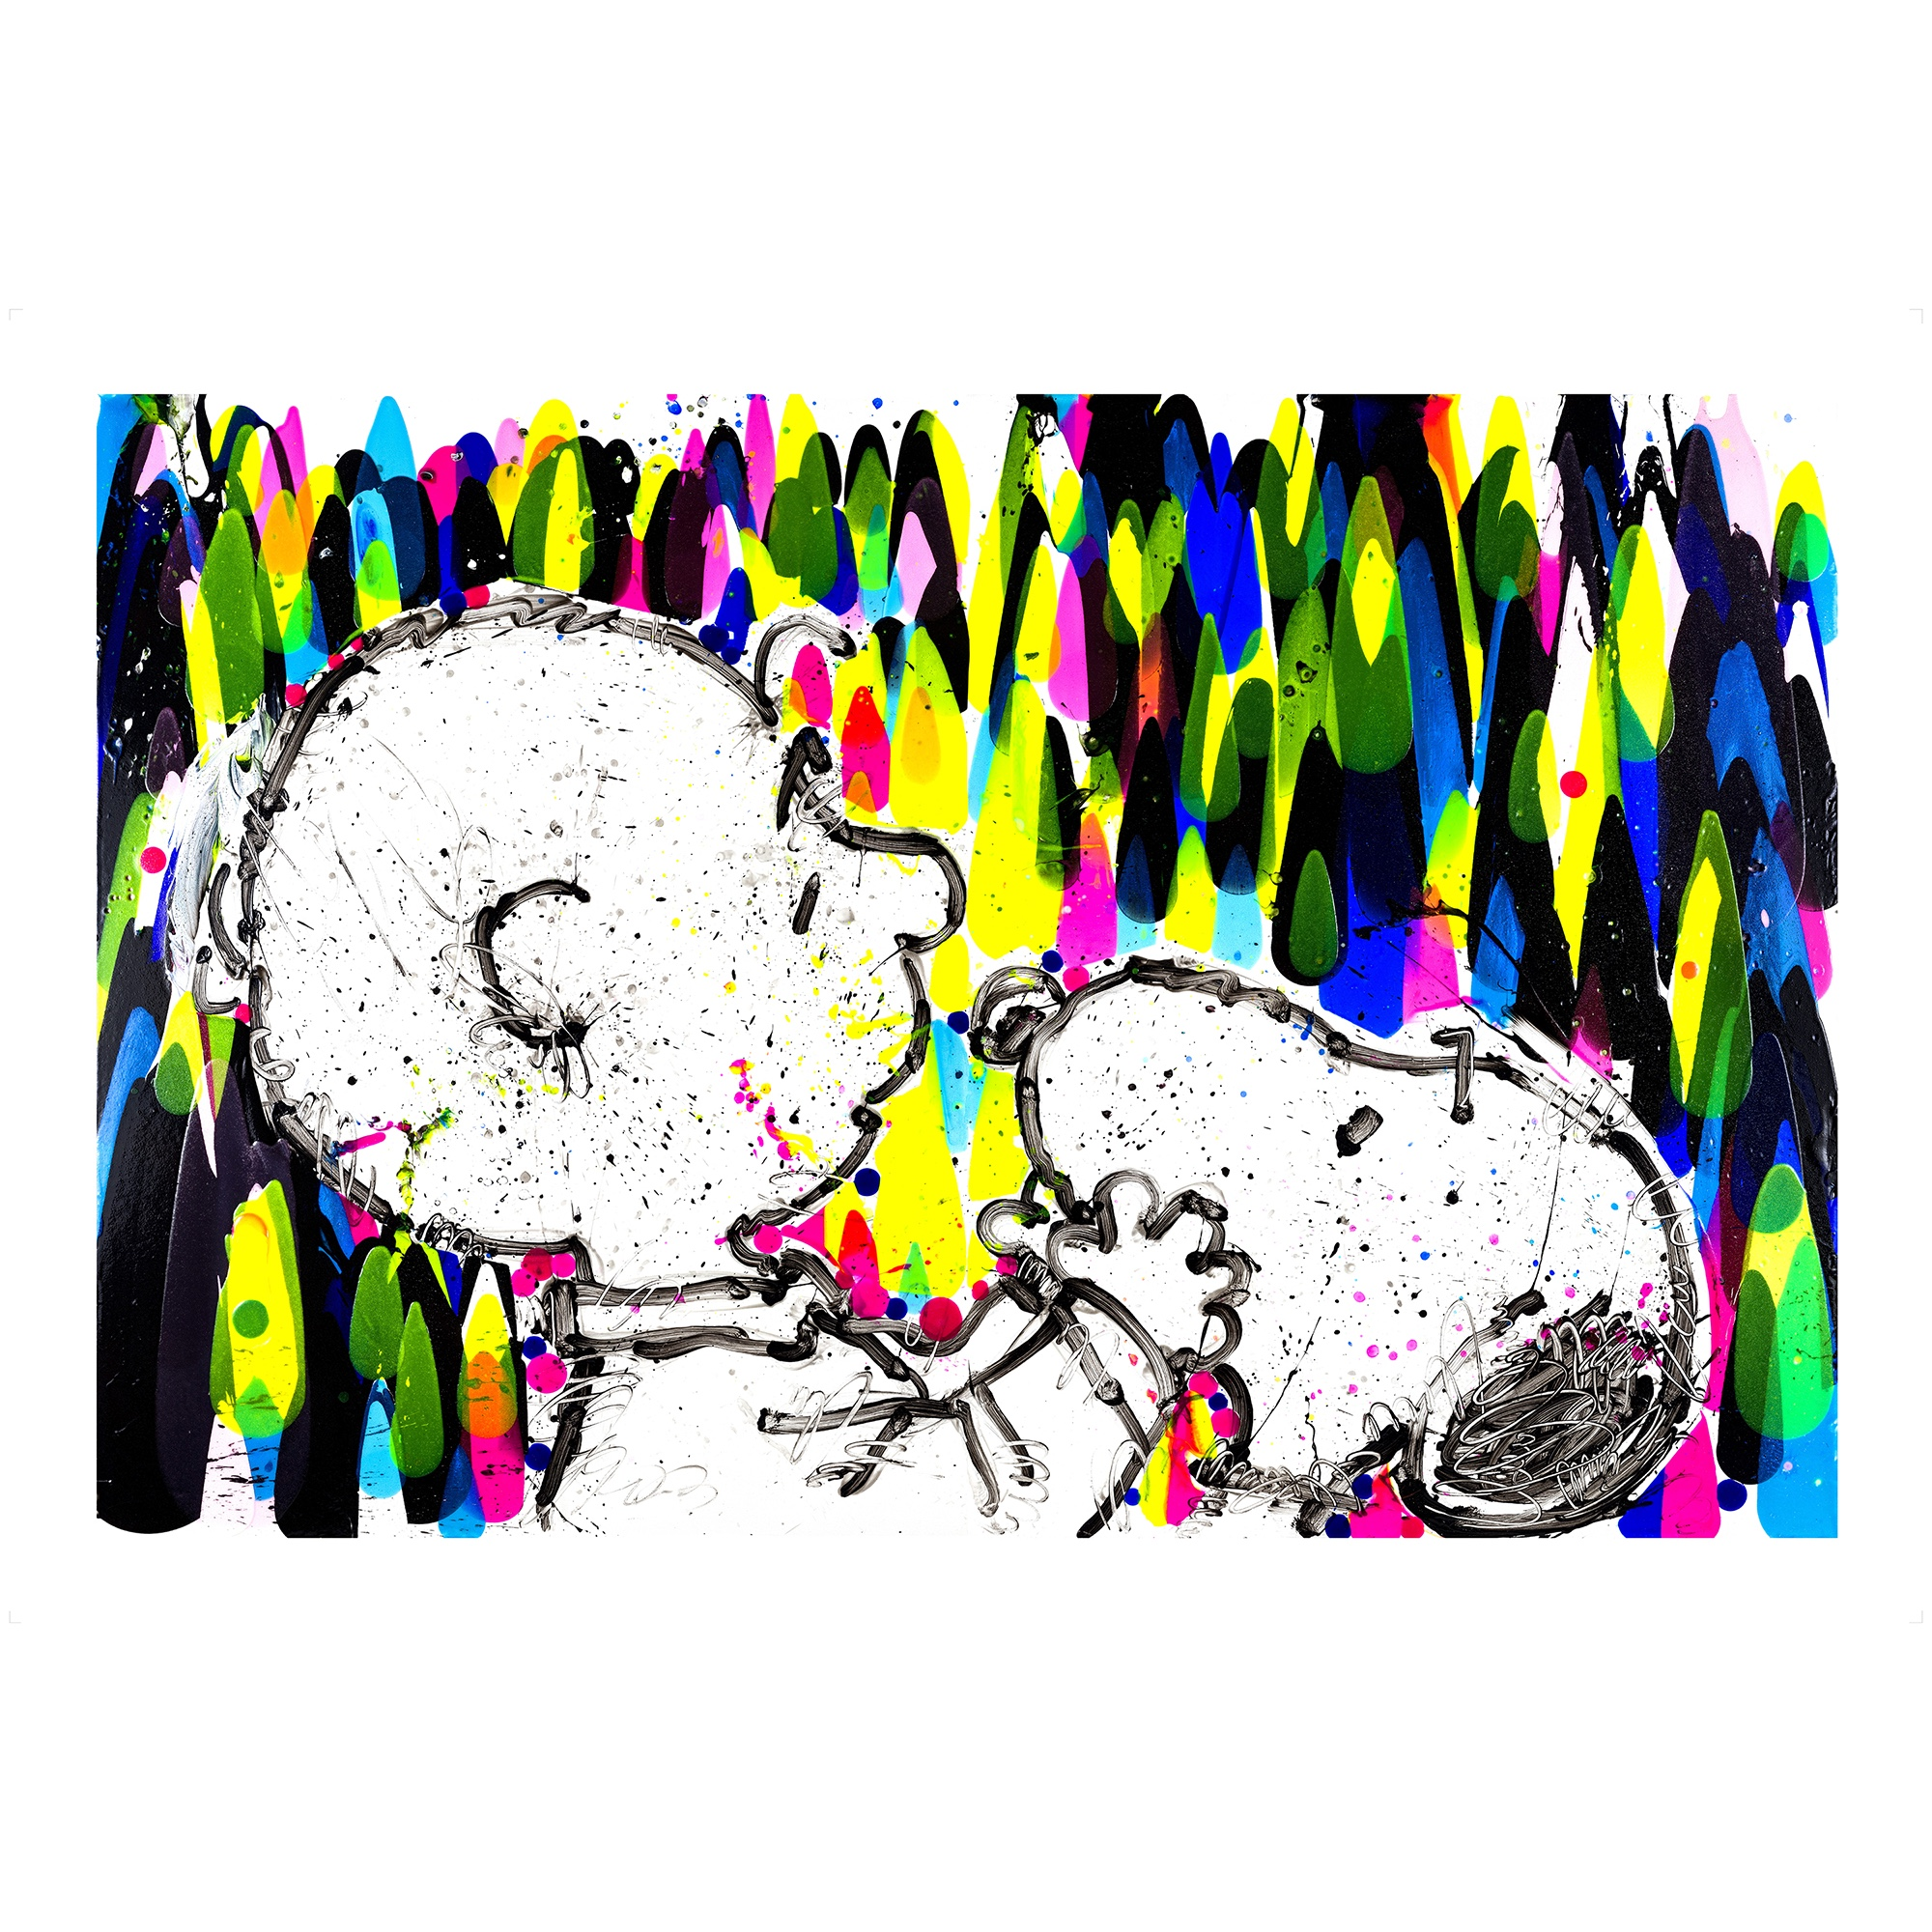 Tom Everhart mixed medium on paper 'Salmon Breath'